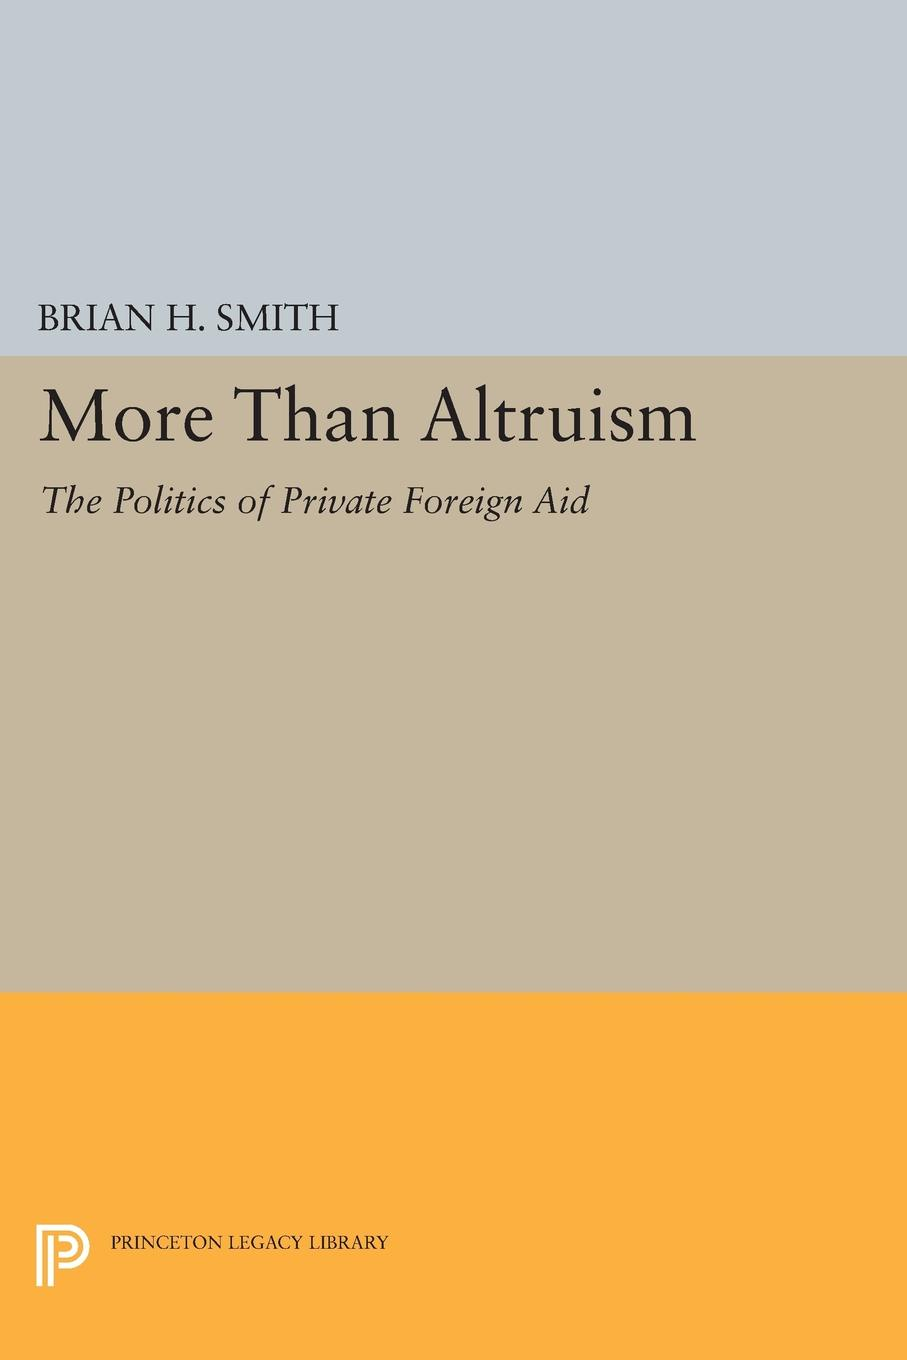 More Than Altruism. The Politics of Private Foreign Aid